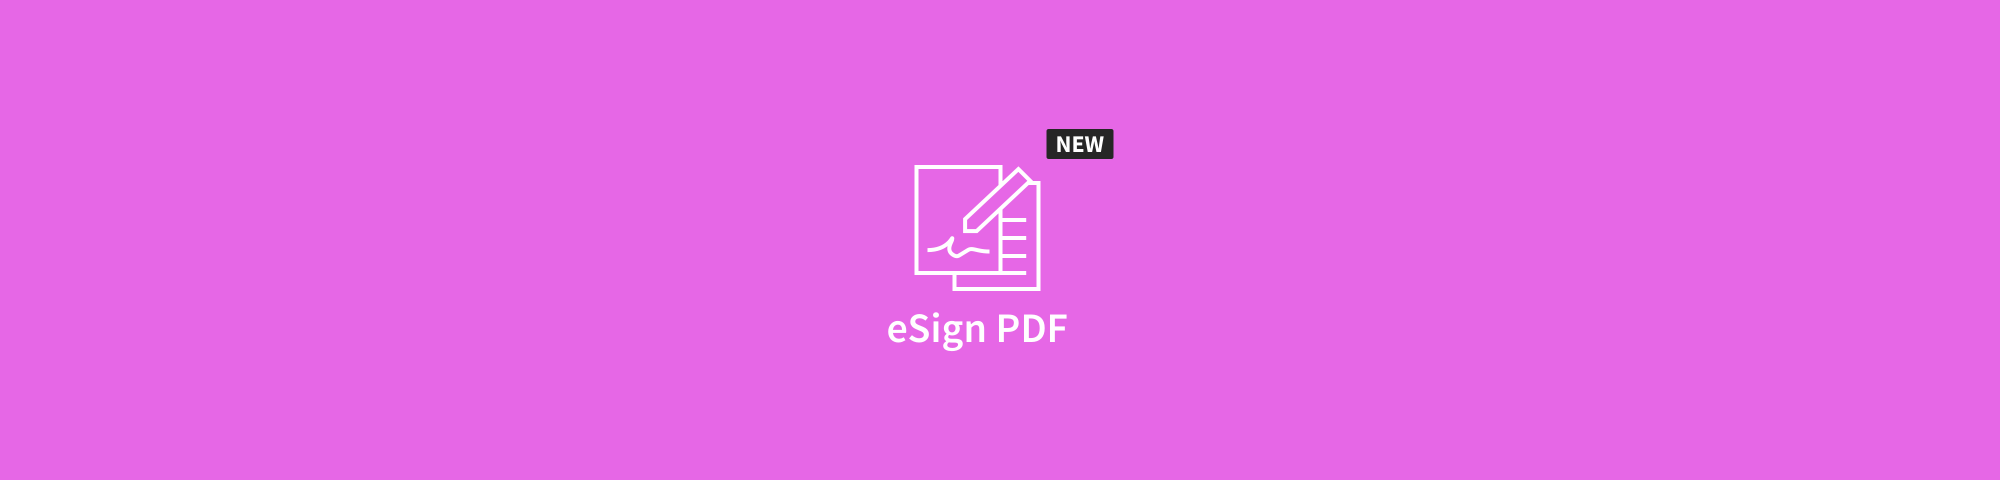 blog-banner: esign-pdf-now-available-as-beta@2x